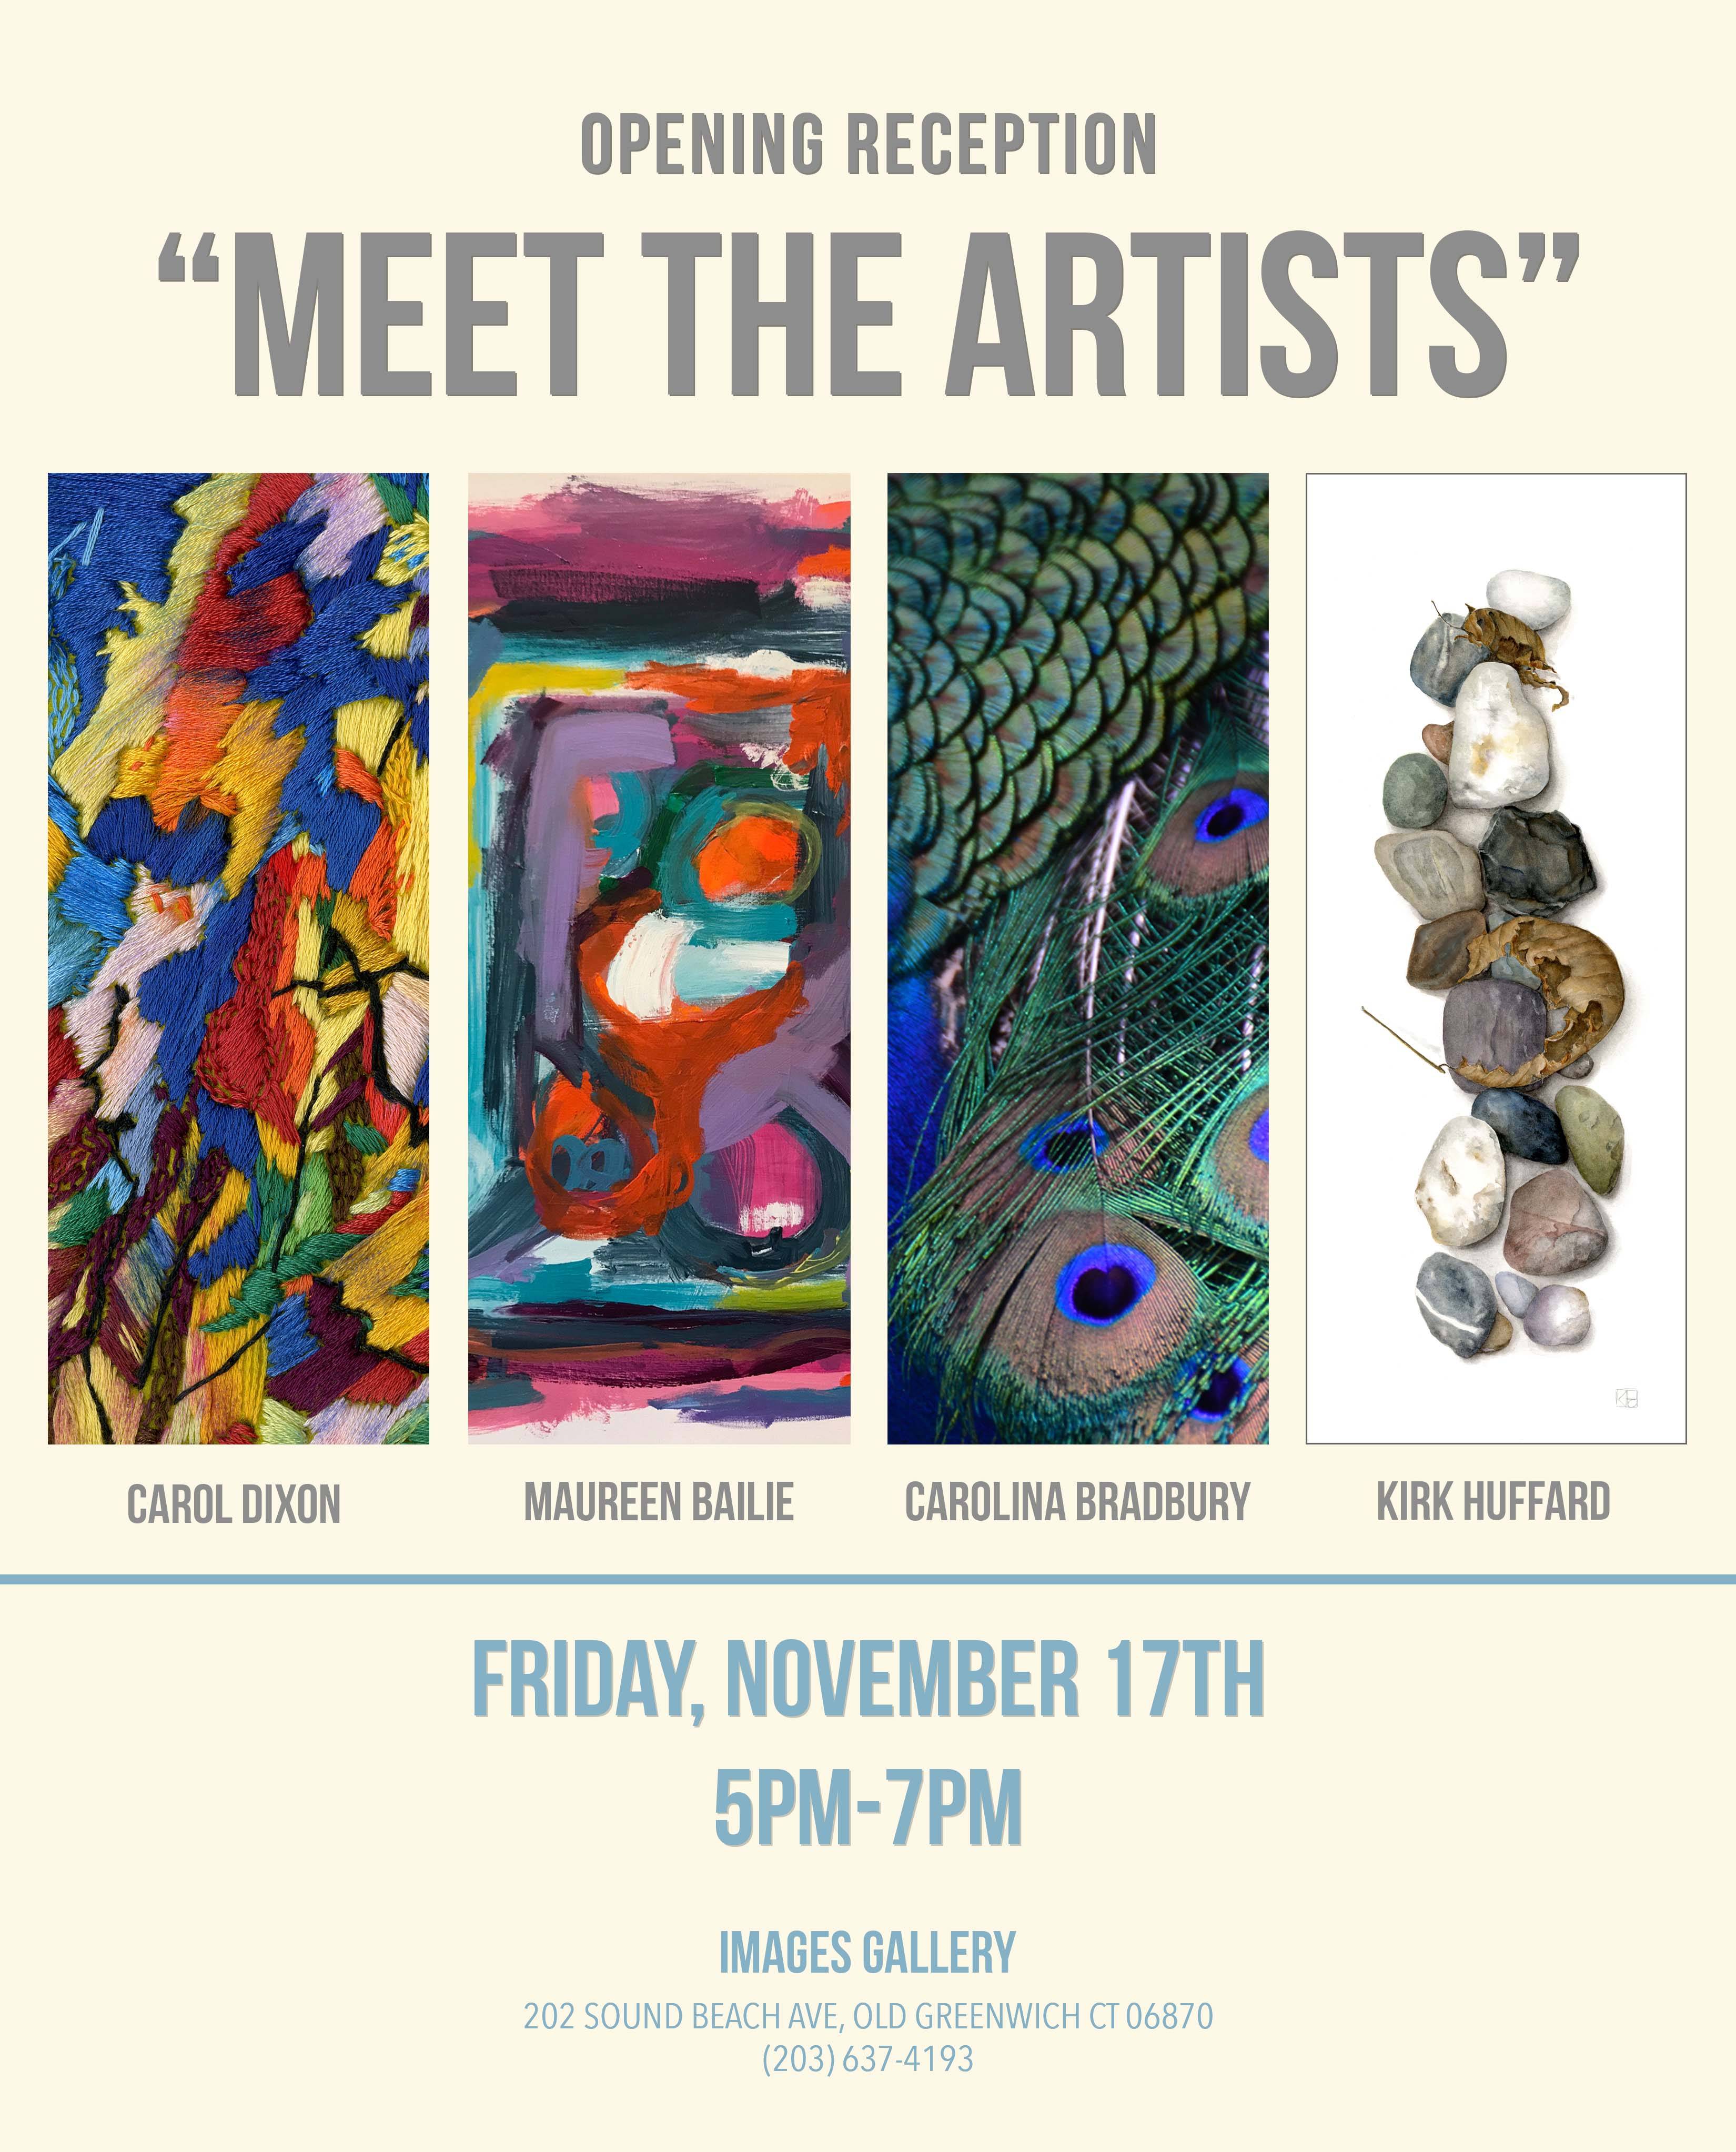 Meet the Artists at Images Gallery